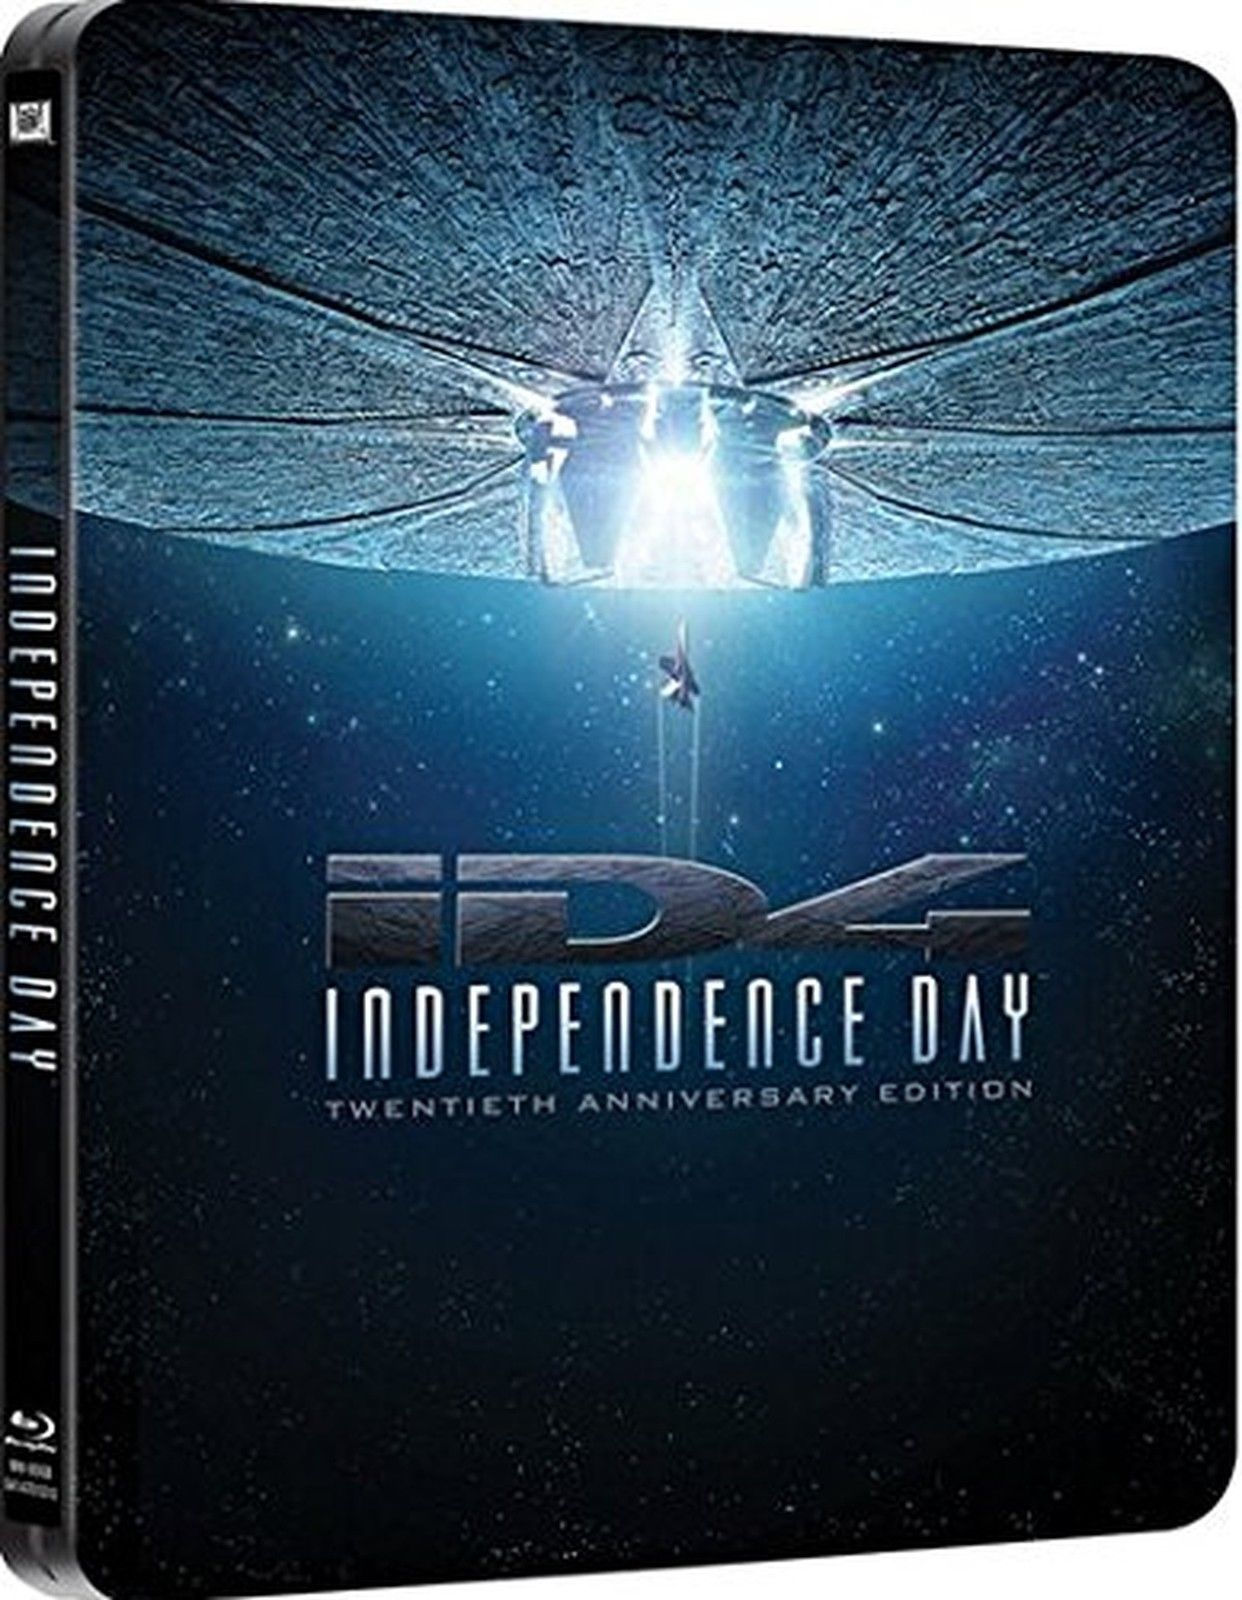 Independence Day 20th Anniversary Edition Steelbook [Blu-ray]